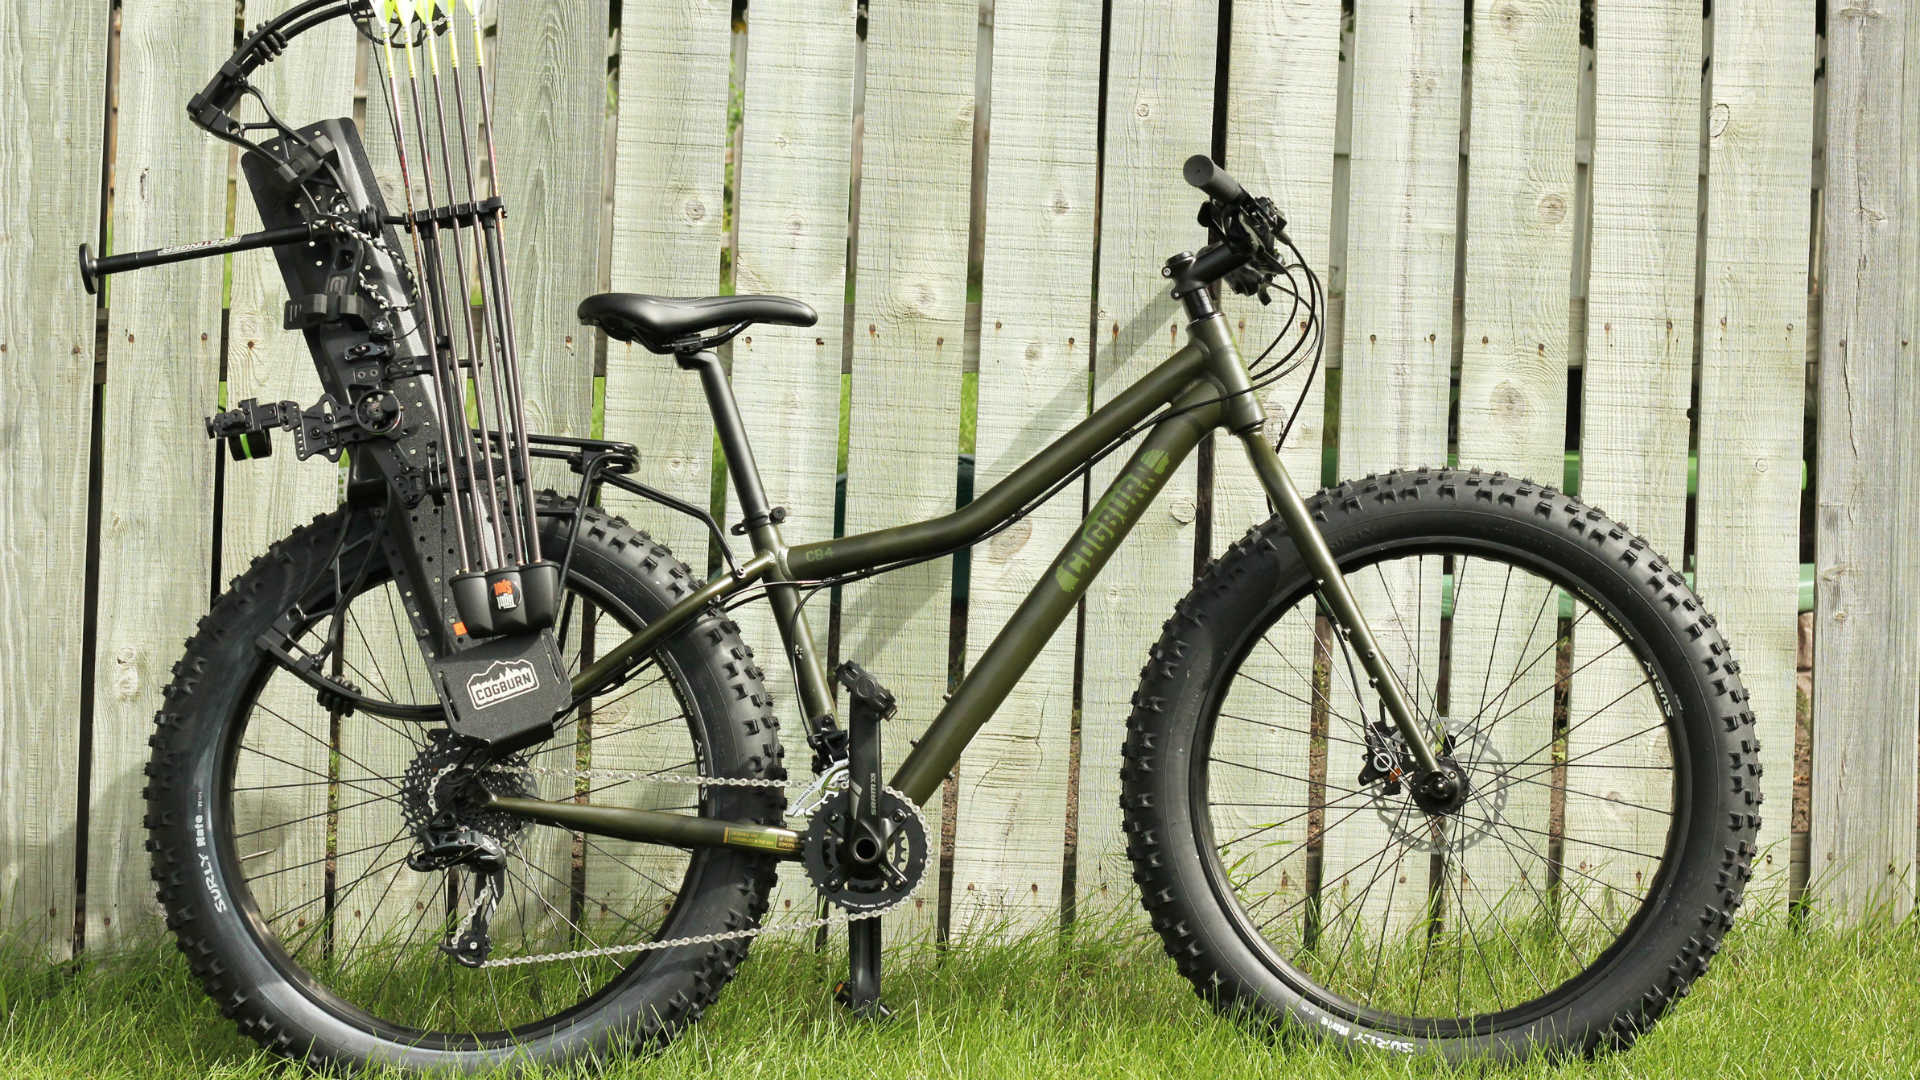 Hunting On Two Wheels Pros And Cons Of Hunting On A Bike Other